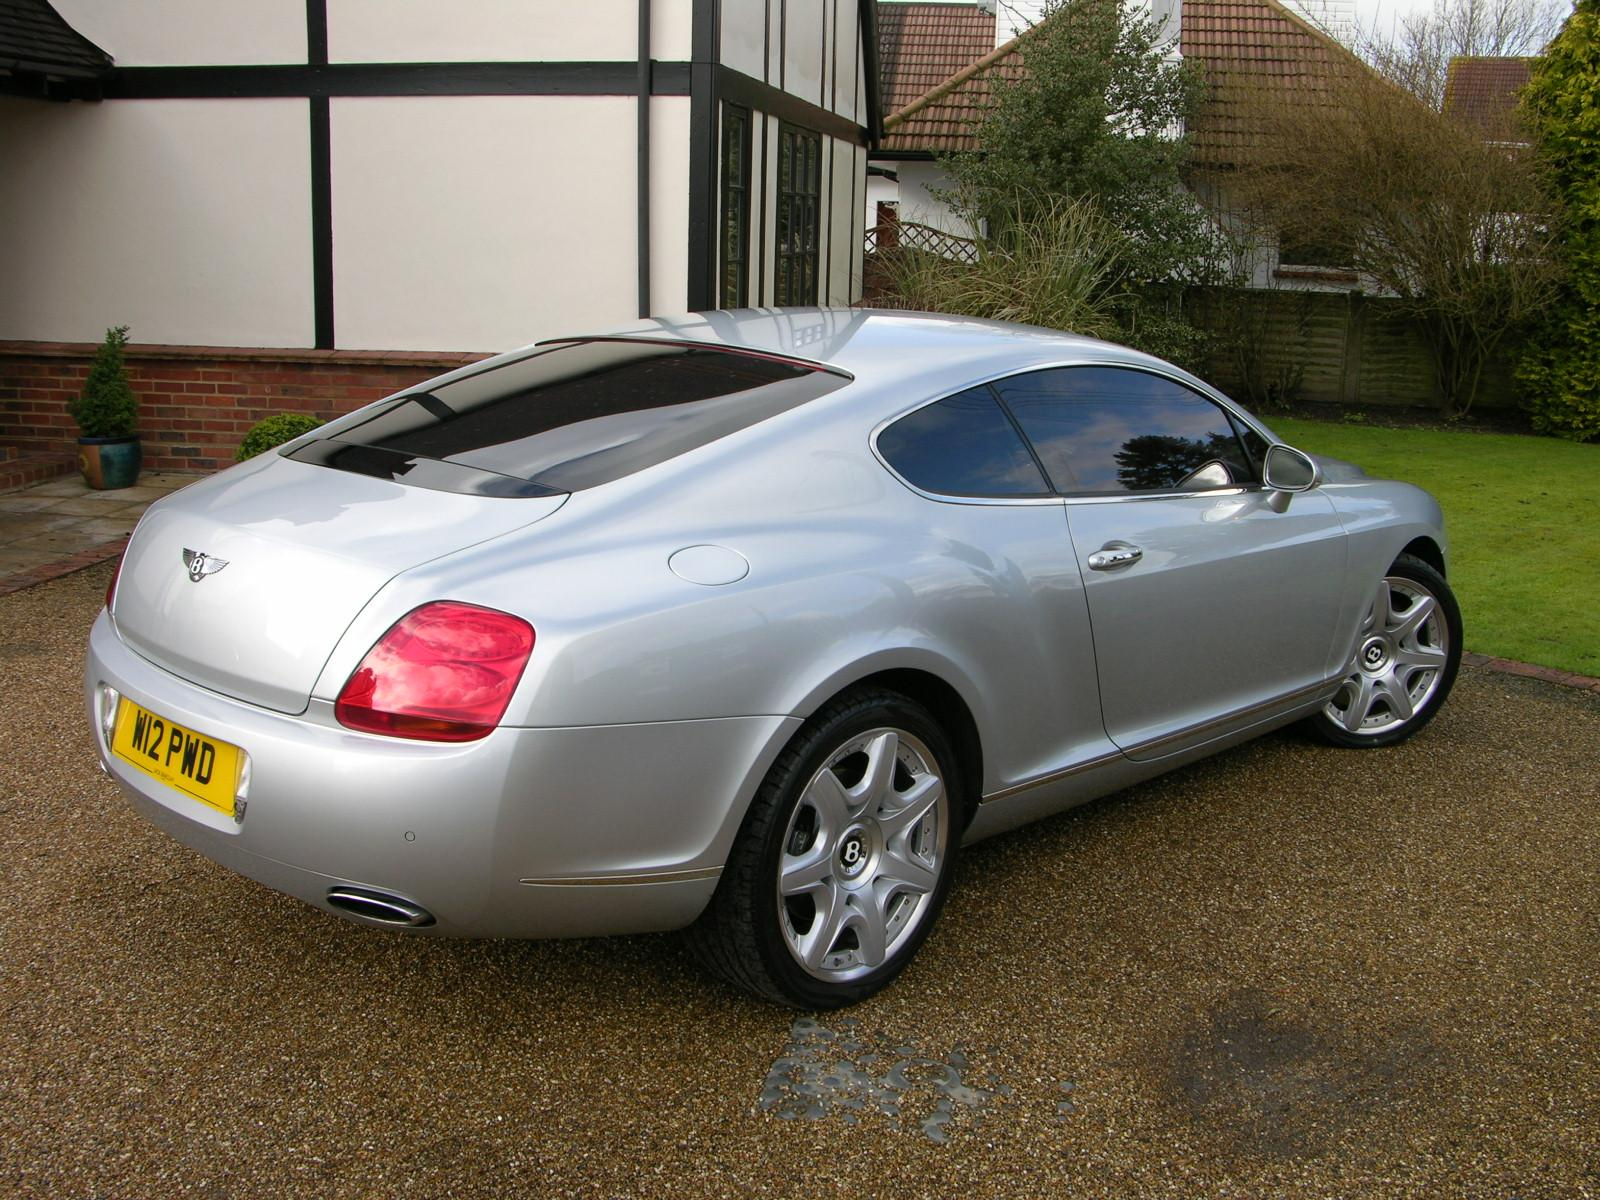 file 2005 bentley continental gt flickr the car spy 18 jpg wikimedia commons. Black Bedroom Furniture Sets. Home Design Ideas